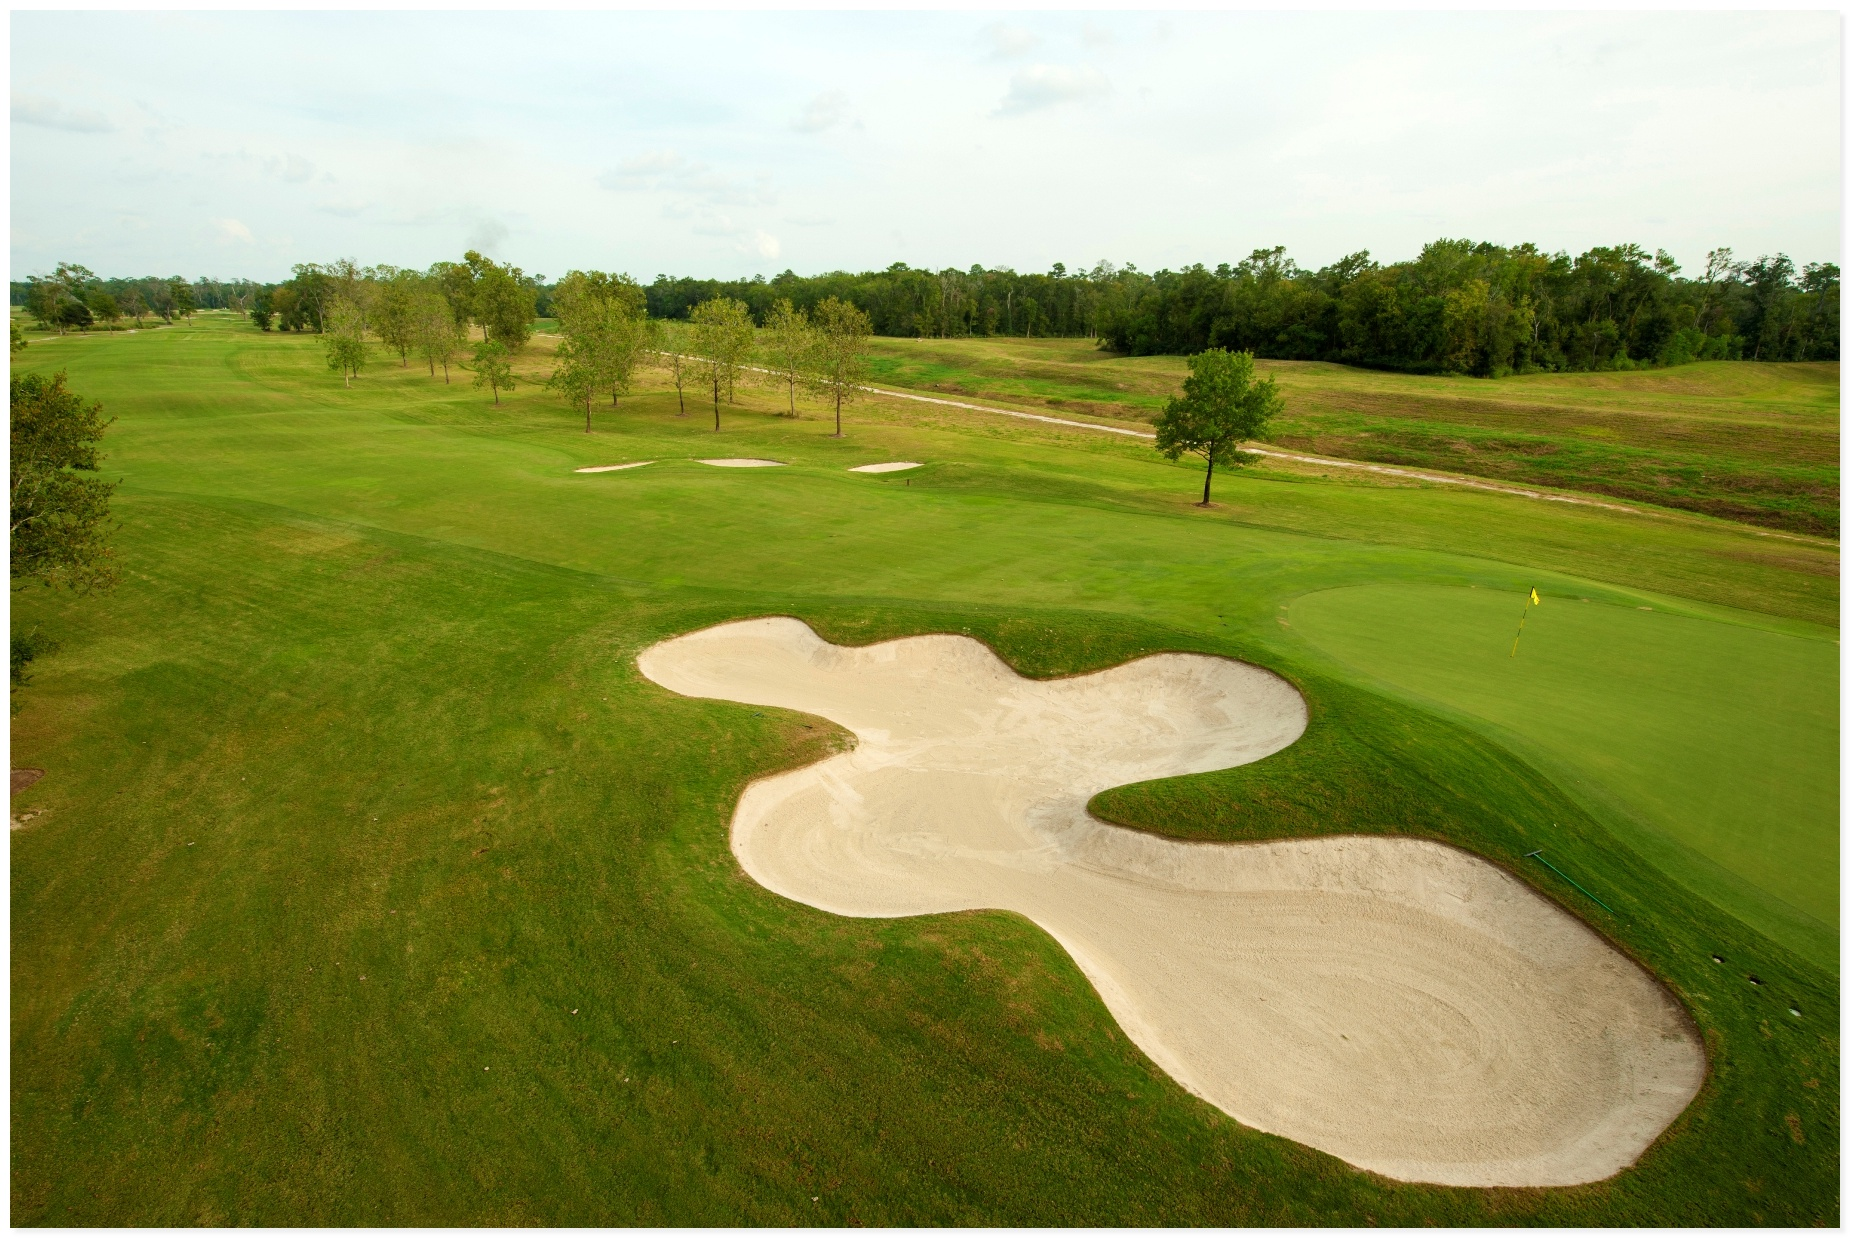 View of entire hole layout featuring straight fairway and flat green